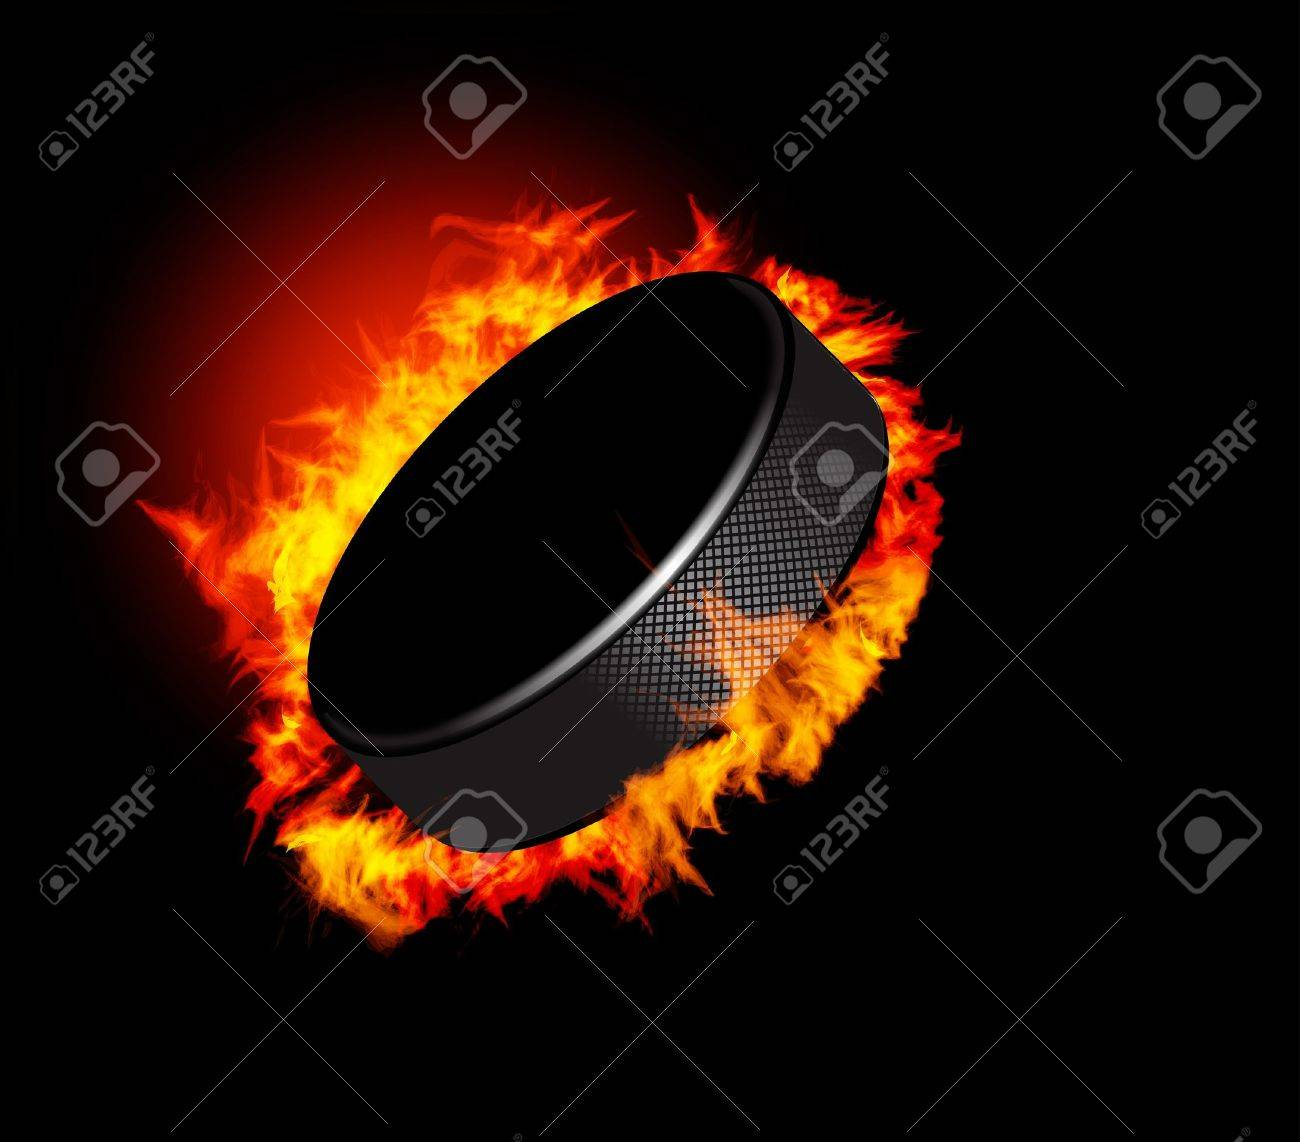 Hockey Puck in Fire isolated on Black Background. Vector. Stock Vector - 10954692